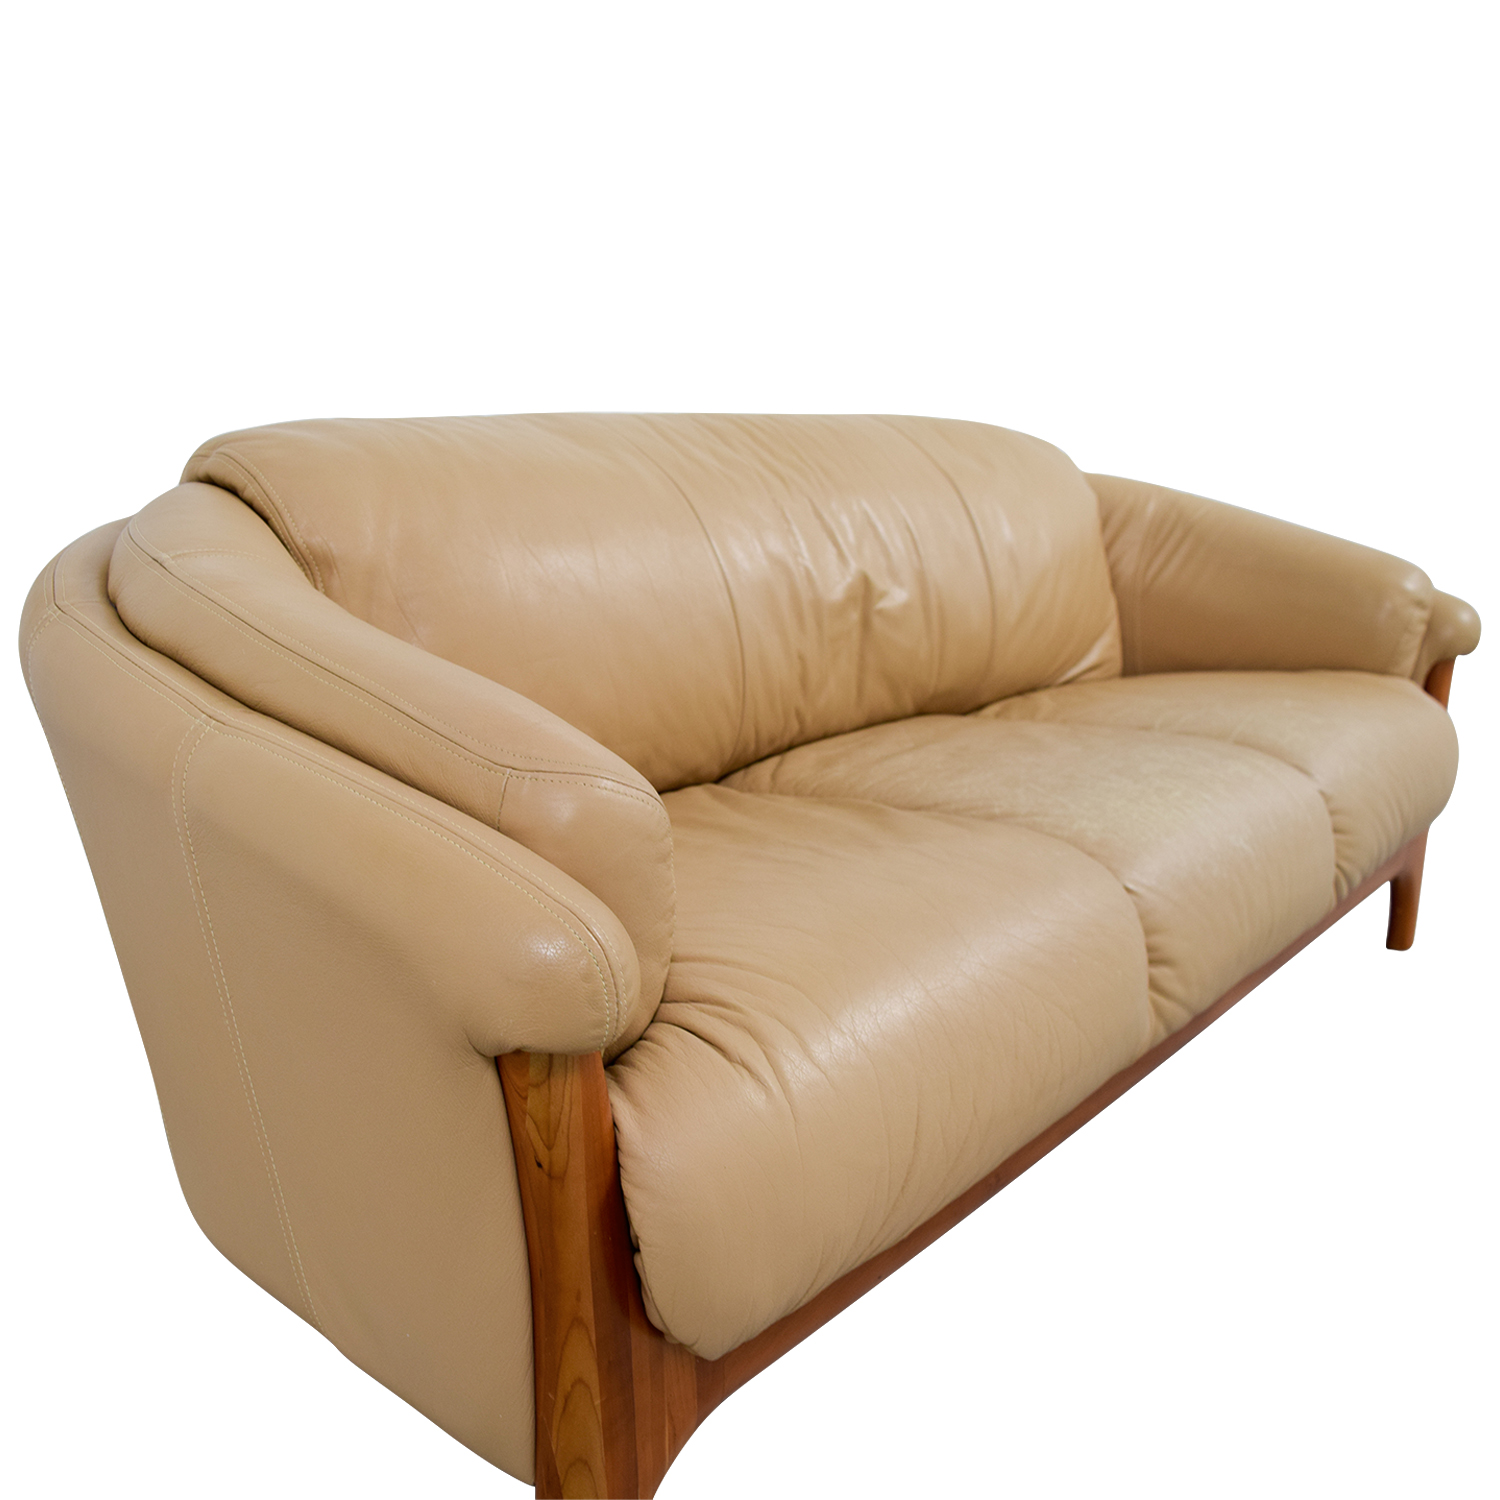 ... Shop House Of Norway Brown Leather Sofa House Of Norway Skandinavian  Furniture Classic Sofas ...